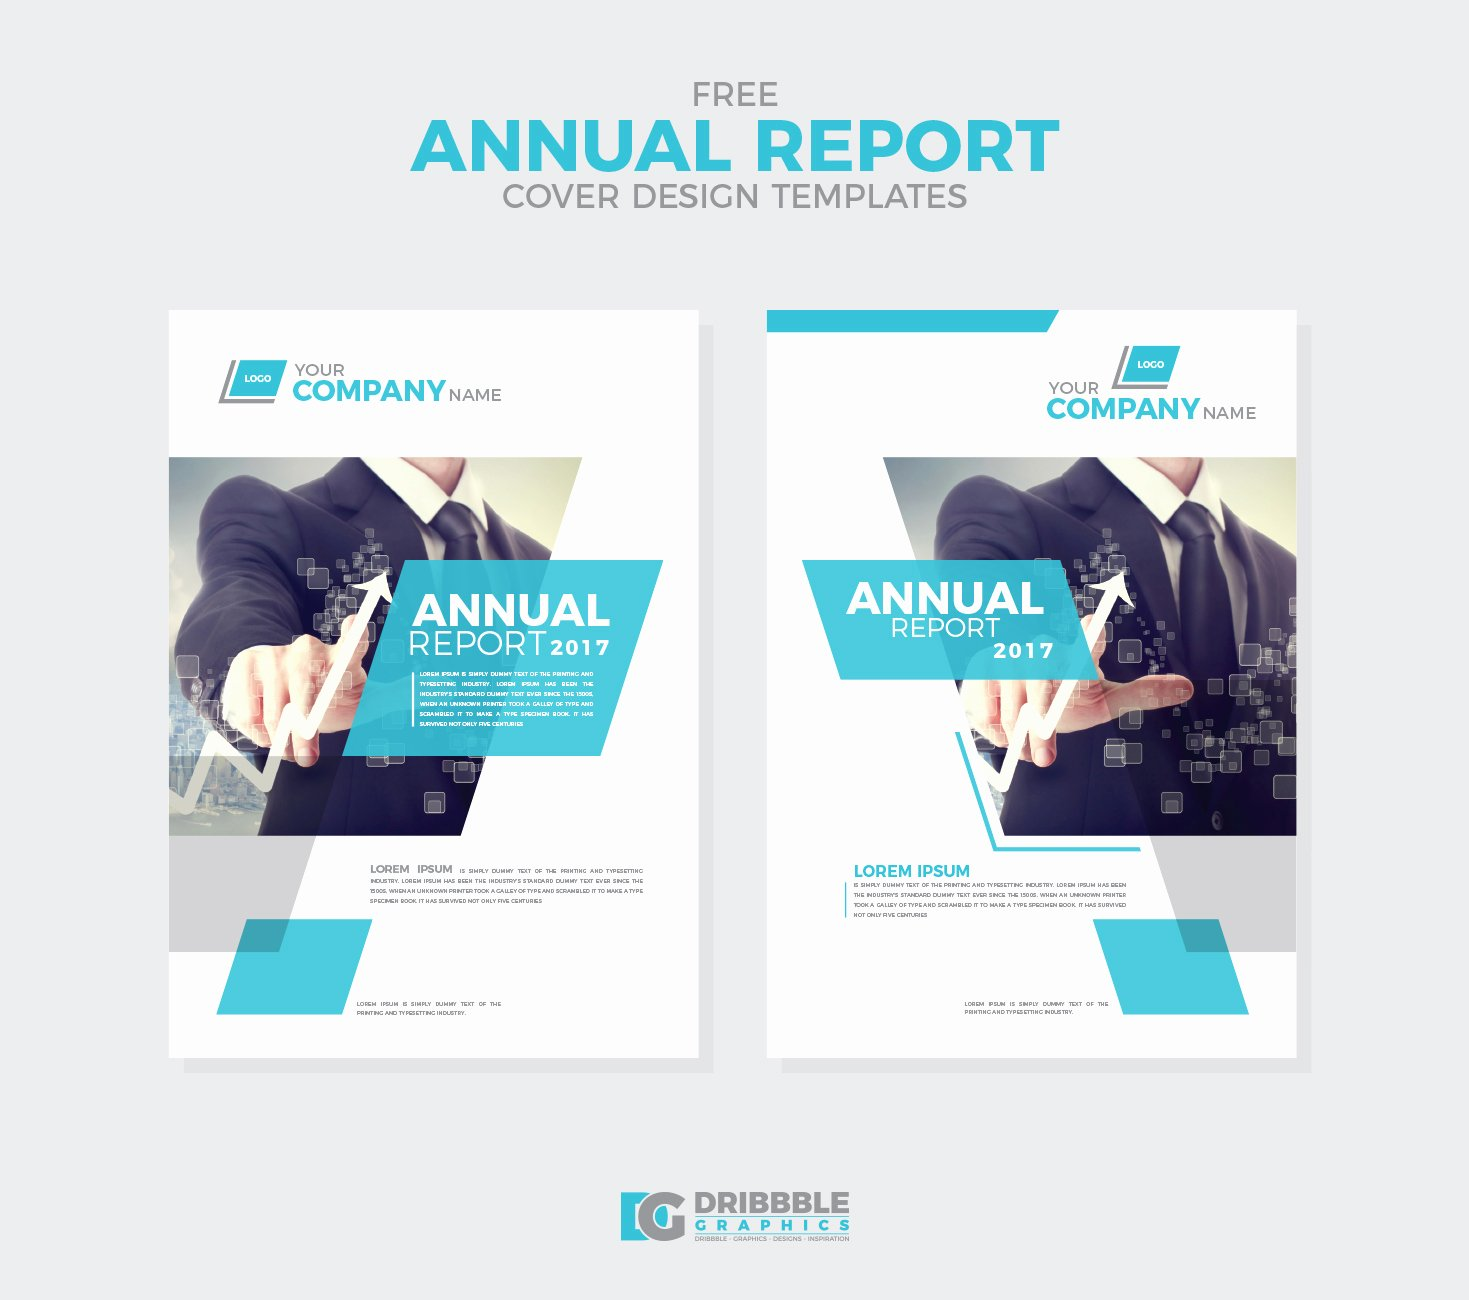 Free Annual Report Template Unique Free Annual Report Cover Design Templates